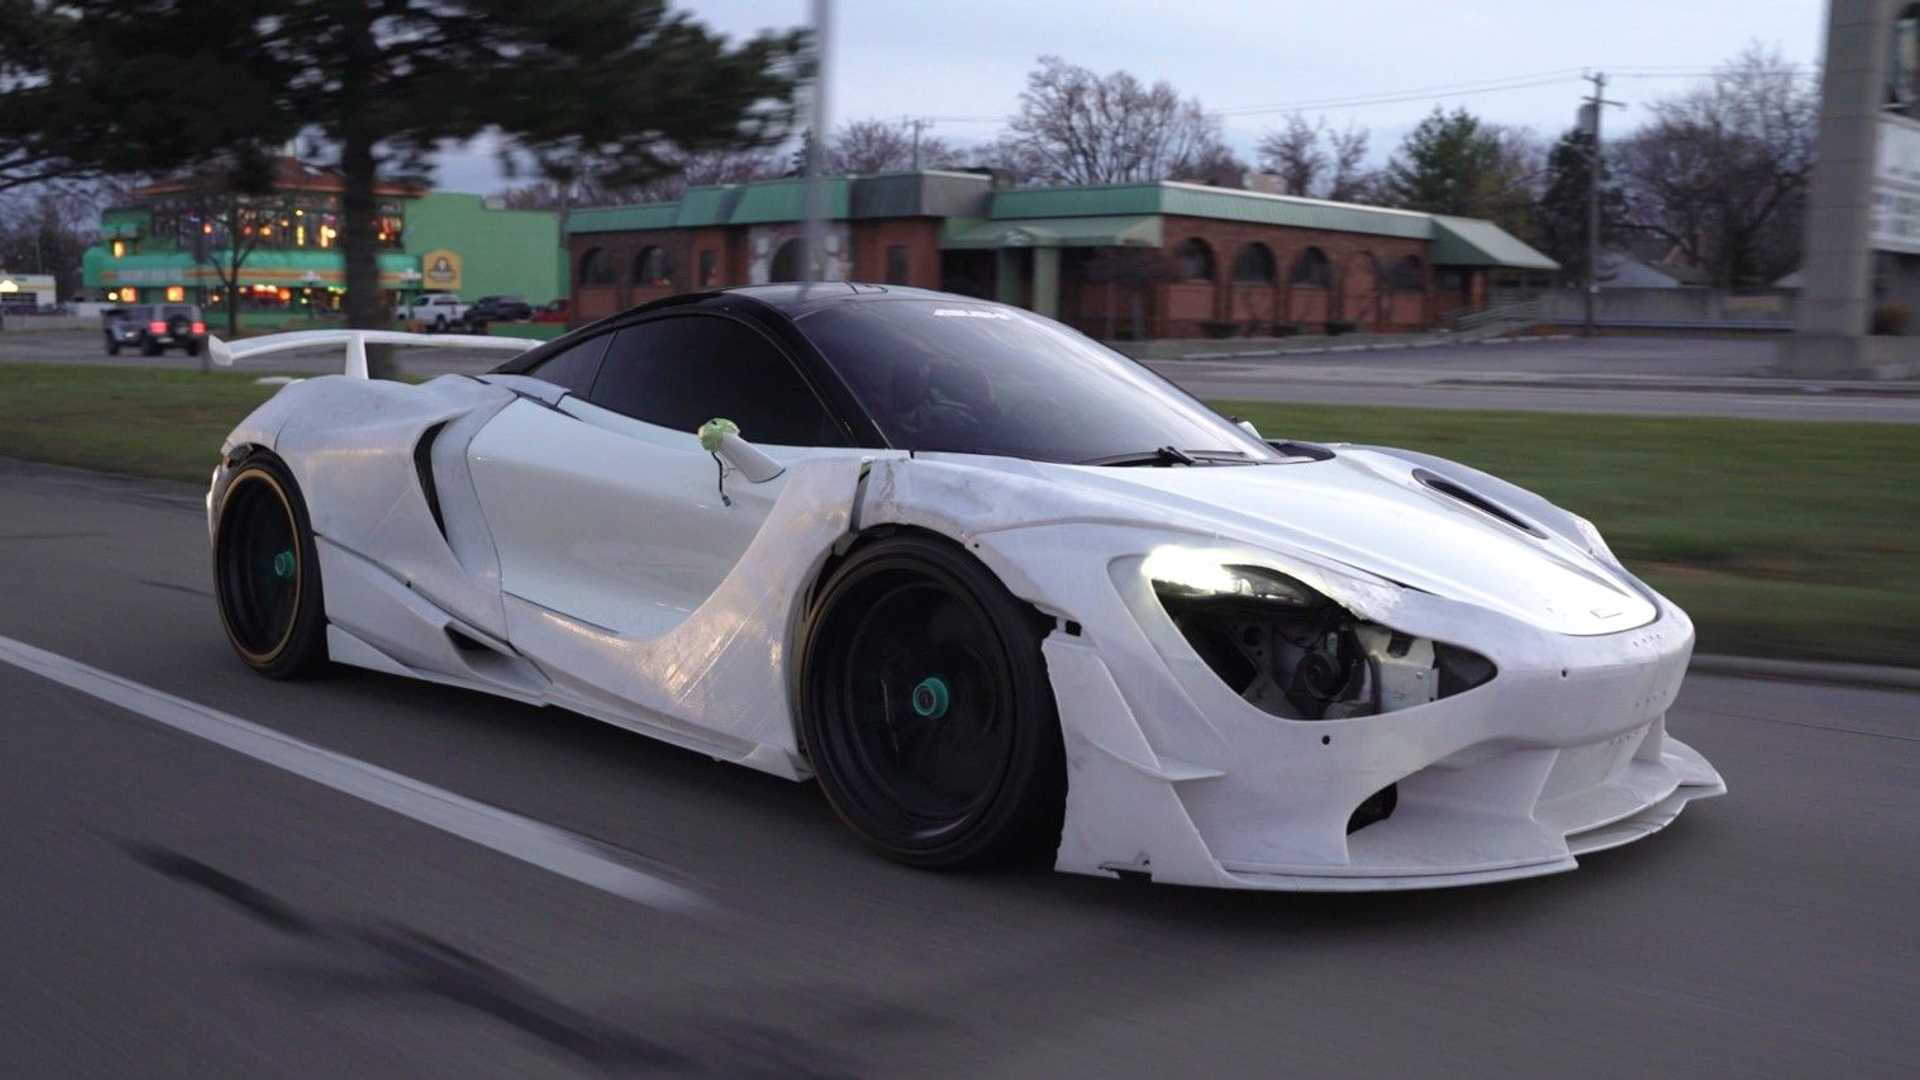 1016 Industries developing 3D-printed body kit for the McLaren 720S